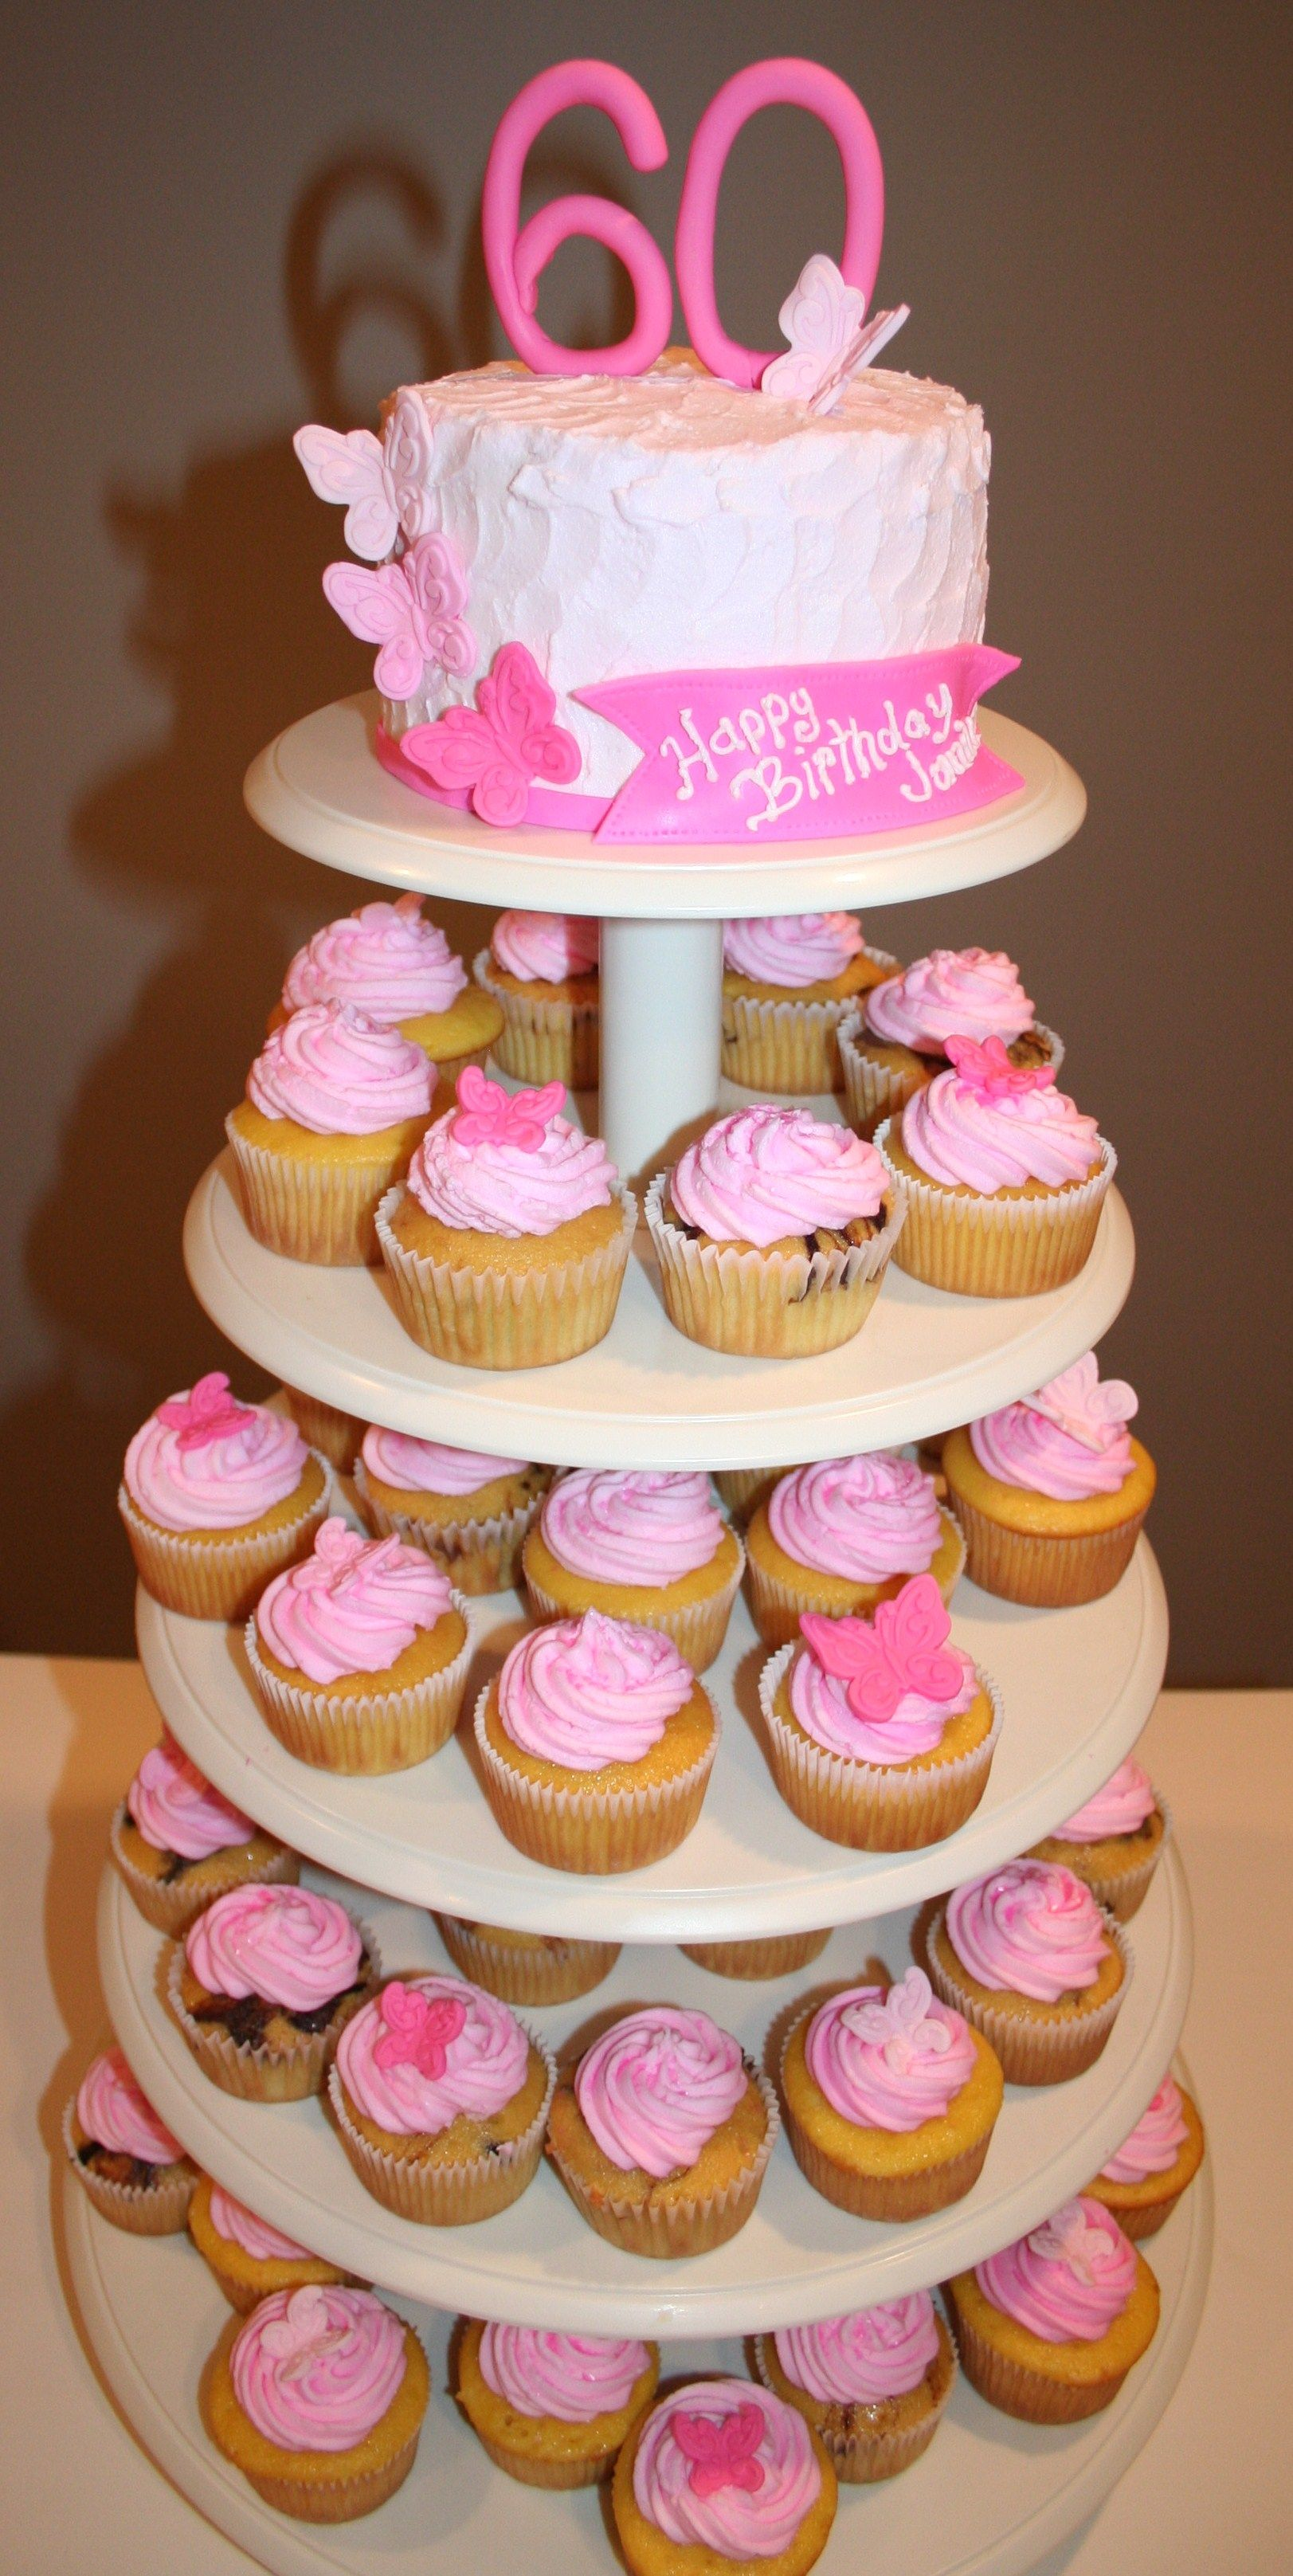 60th birthday cupcake tower ButterCup Bakes ♡ Pinterest